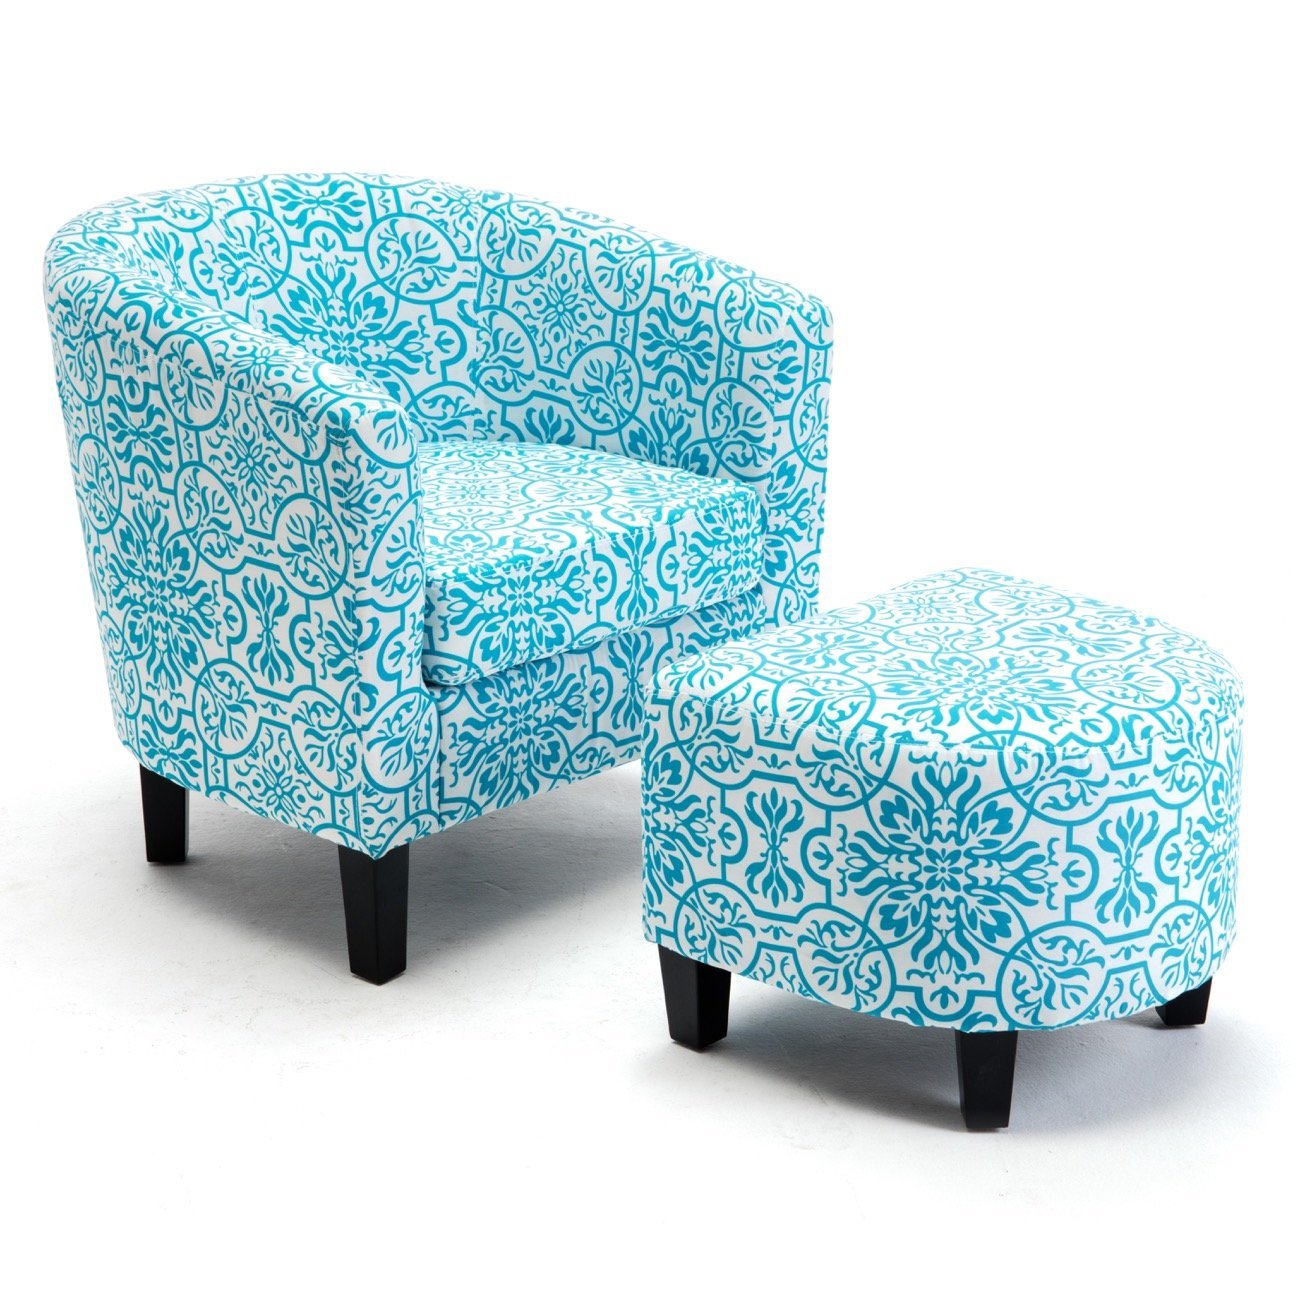 floral upholstered chair luxury beach chairs cheap find deals belleze modern barrel accent with ottoman footrest set blue print